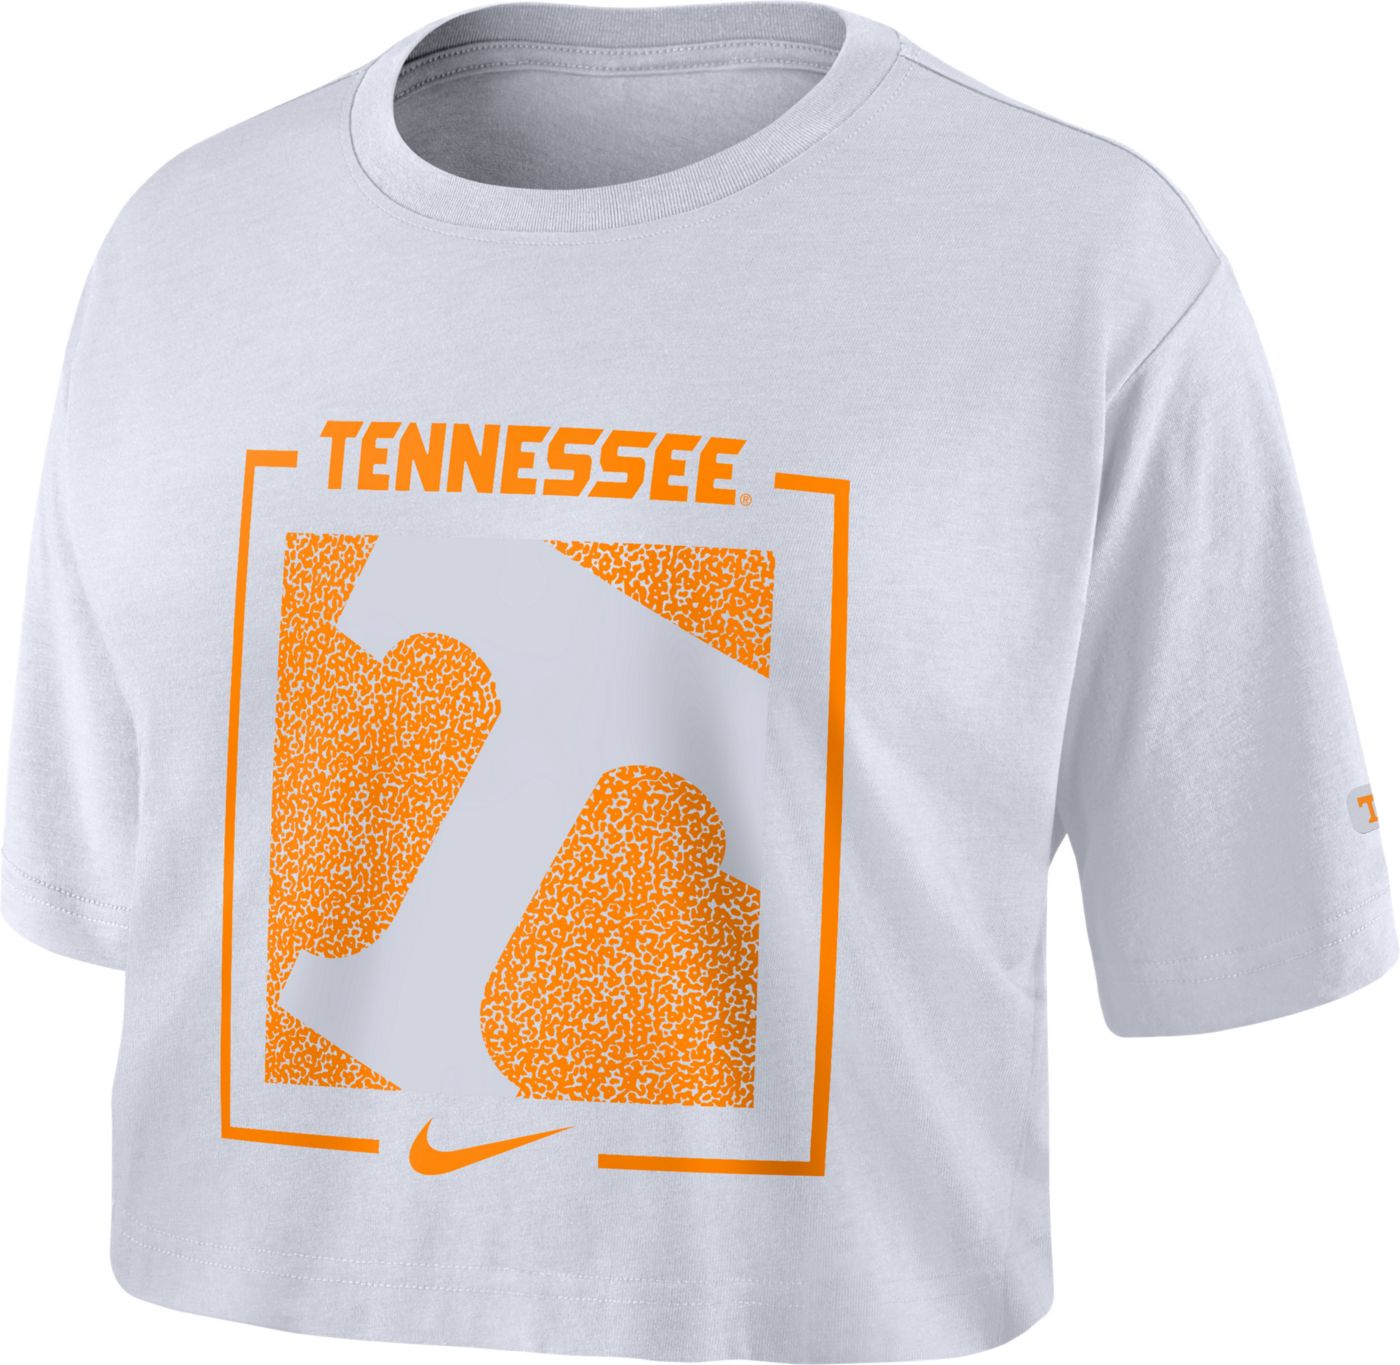 Nike Women's Tennessee Volunteers Dry Cropped White T-Shirt